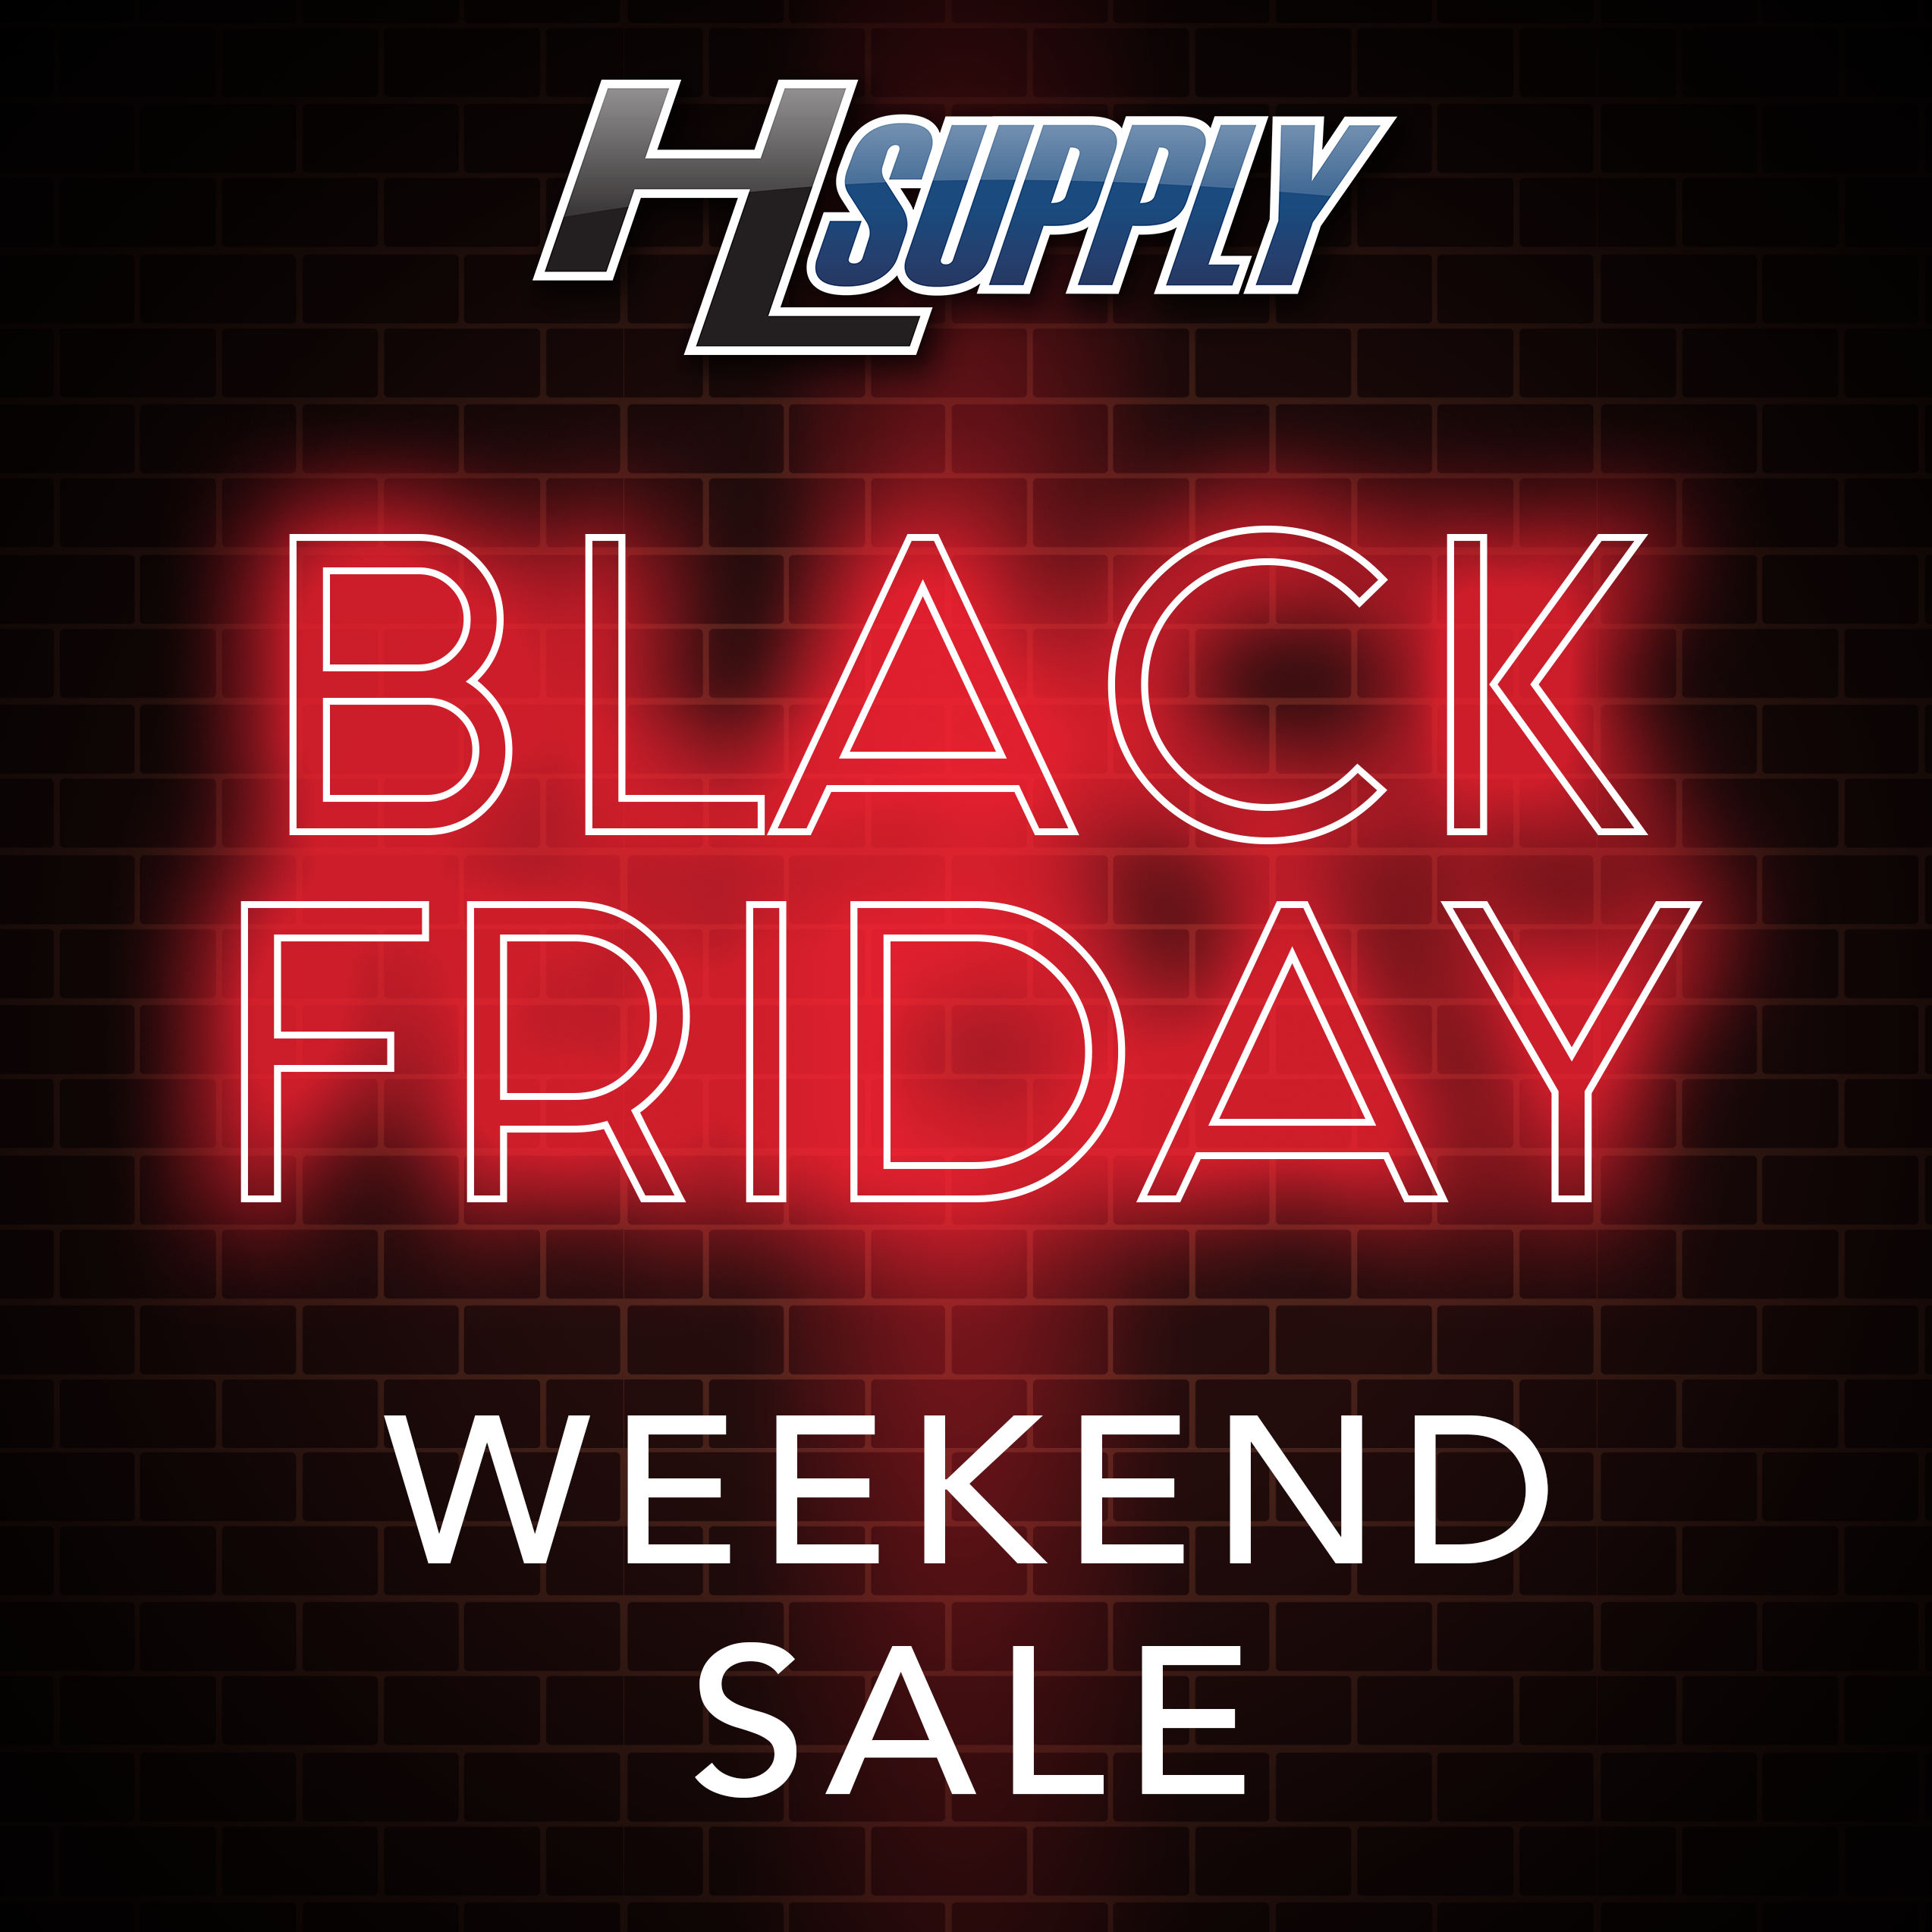 HLSupply Black Friday Sale